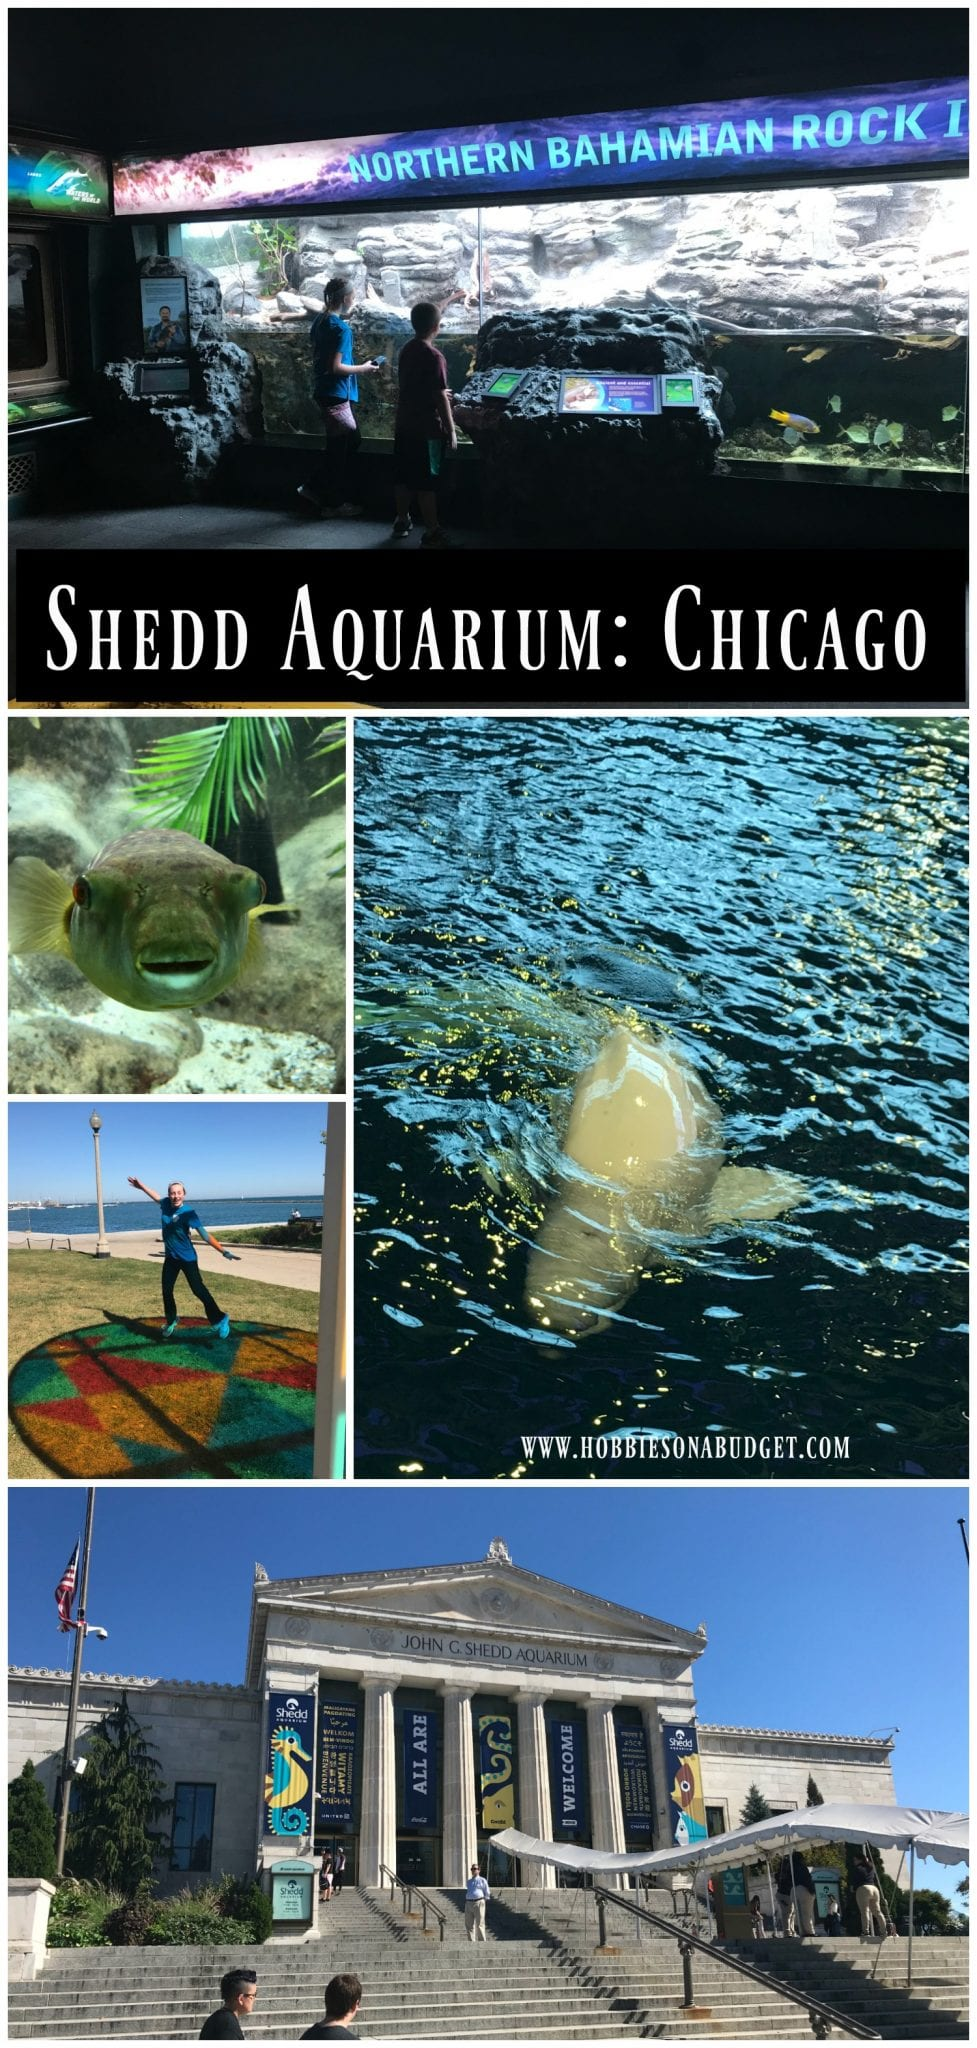 Shedd Aquarium Chicago - Book Tickets & Tours | skillfulnep.tkest prices· Fast & Easy booking· No hassle booking· Easy online booking.